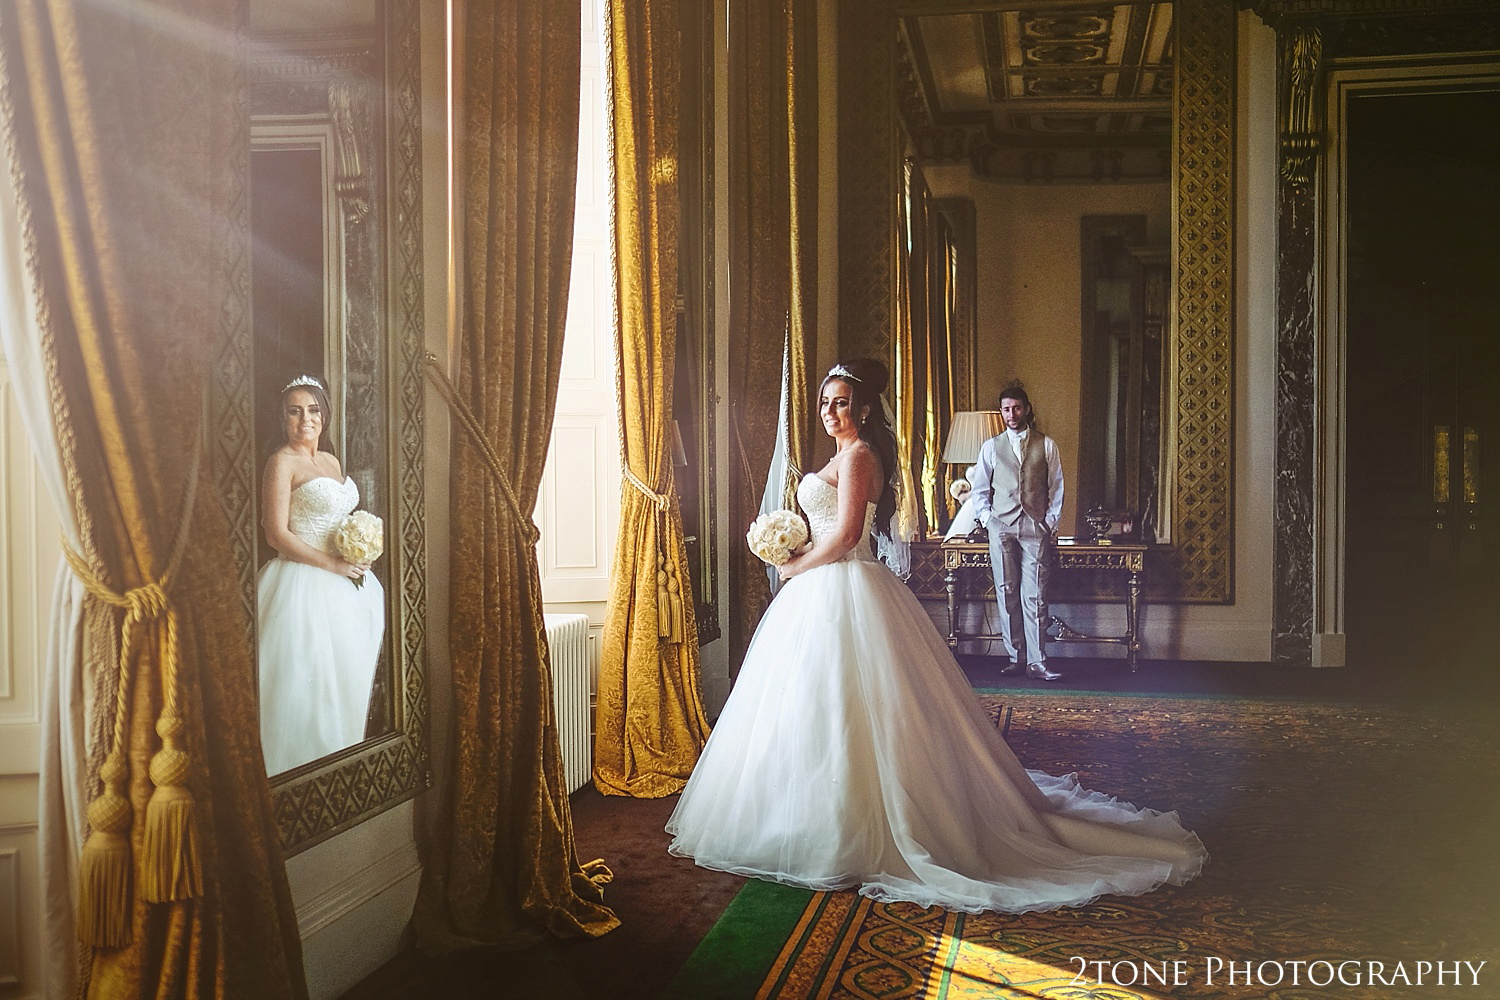 The mirror room, Wynyard Hall by Newcastle and Durham based Wedding Photographer www.2tonephotography.co.uk